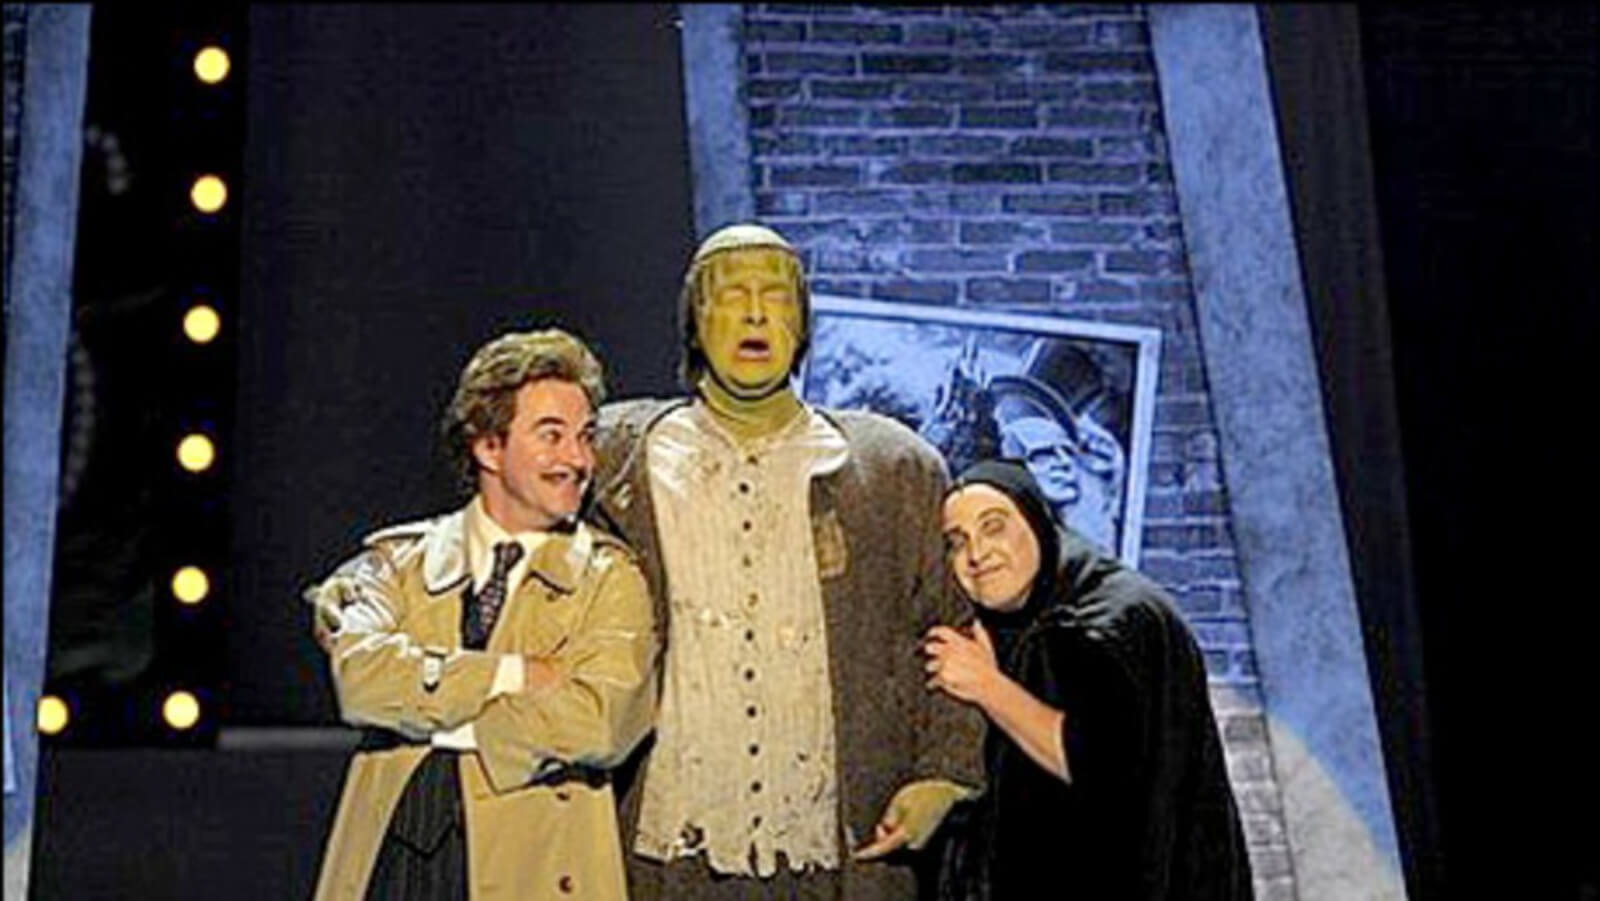 Roger Bart, Shuler Hensley, and Cory English in a scene from Young Frankenstein. Shuler is costumed as the monster and the other gents are leaning in towards him.